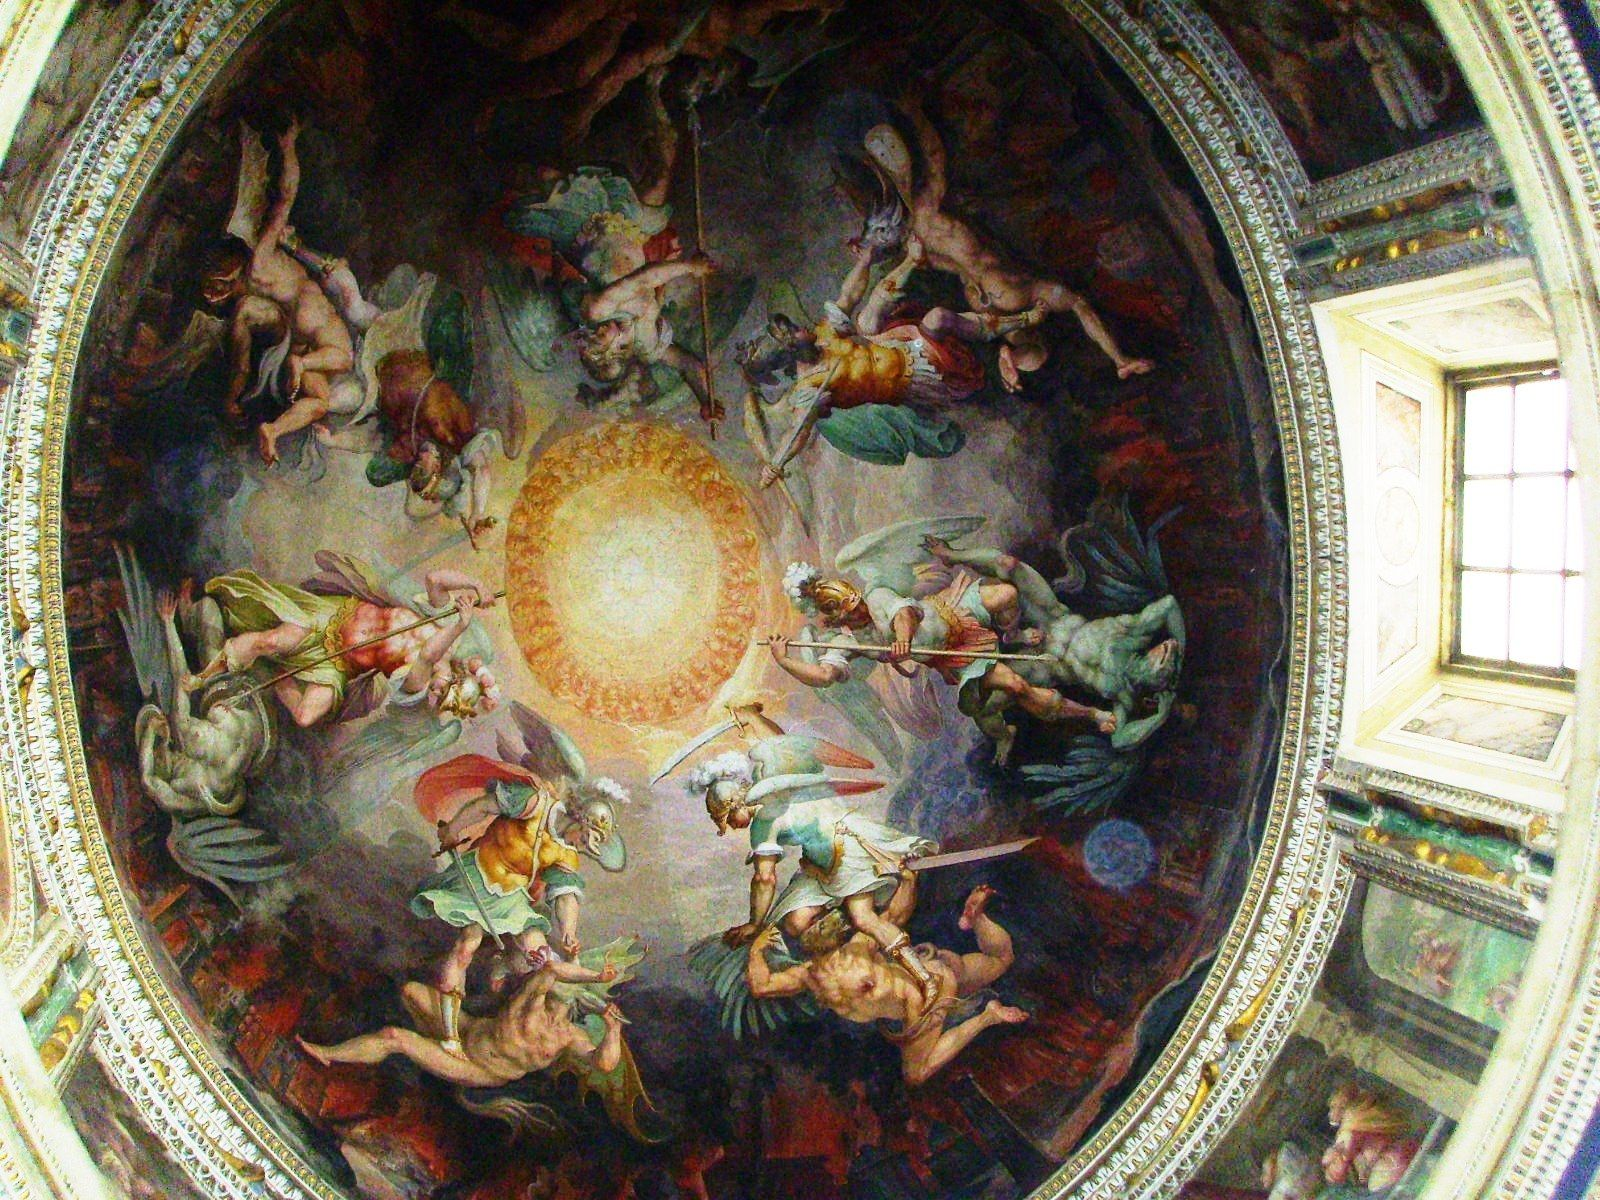 18 michelangelo paintings on the ceilings michelangelo for Painting on ceiling